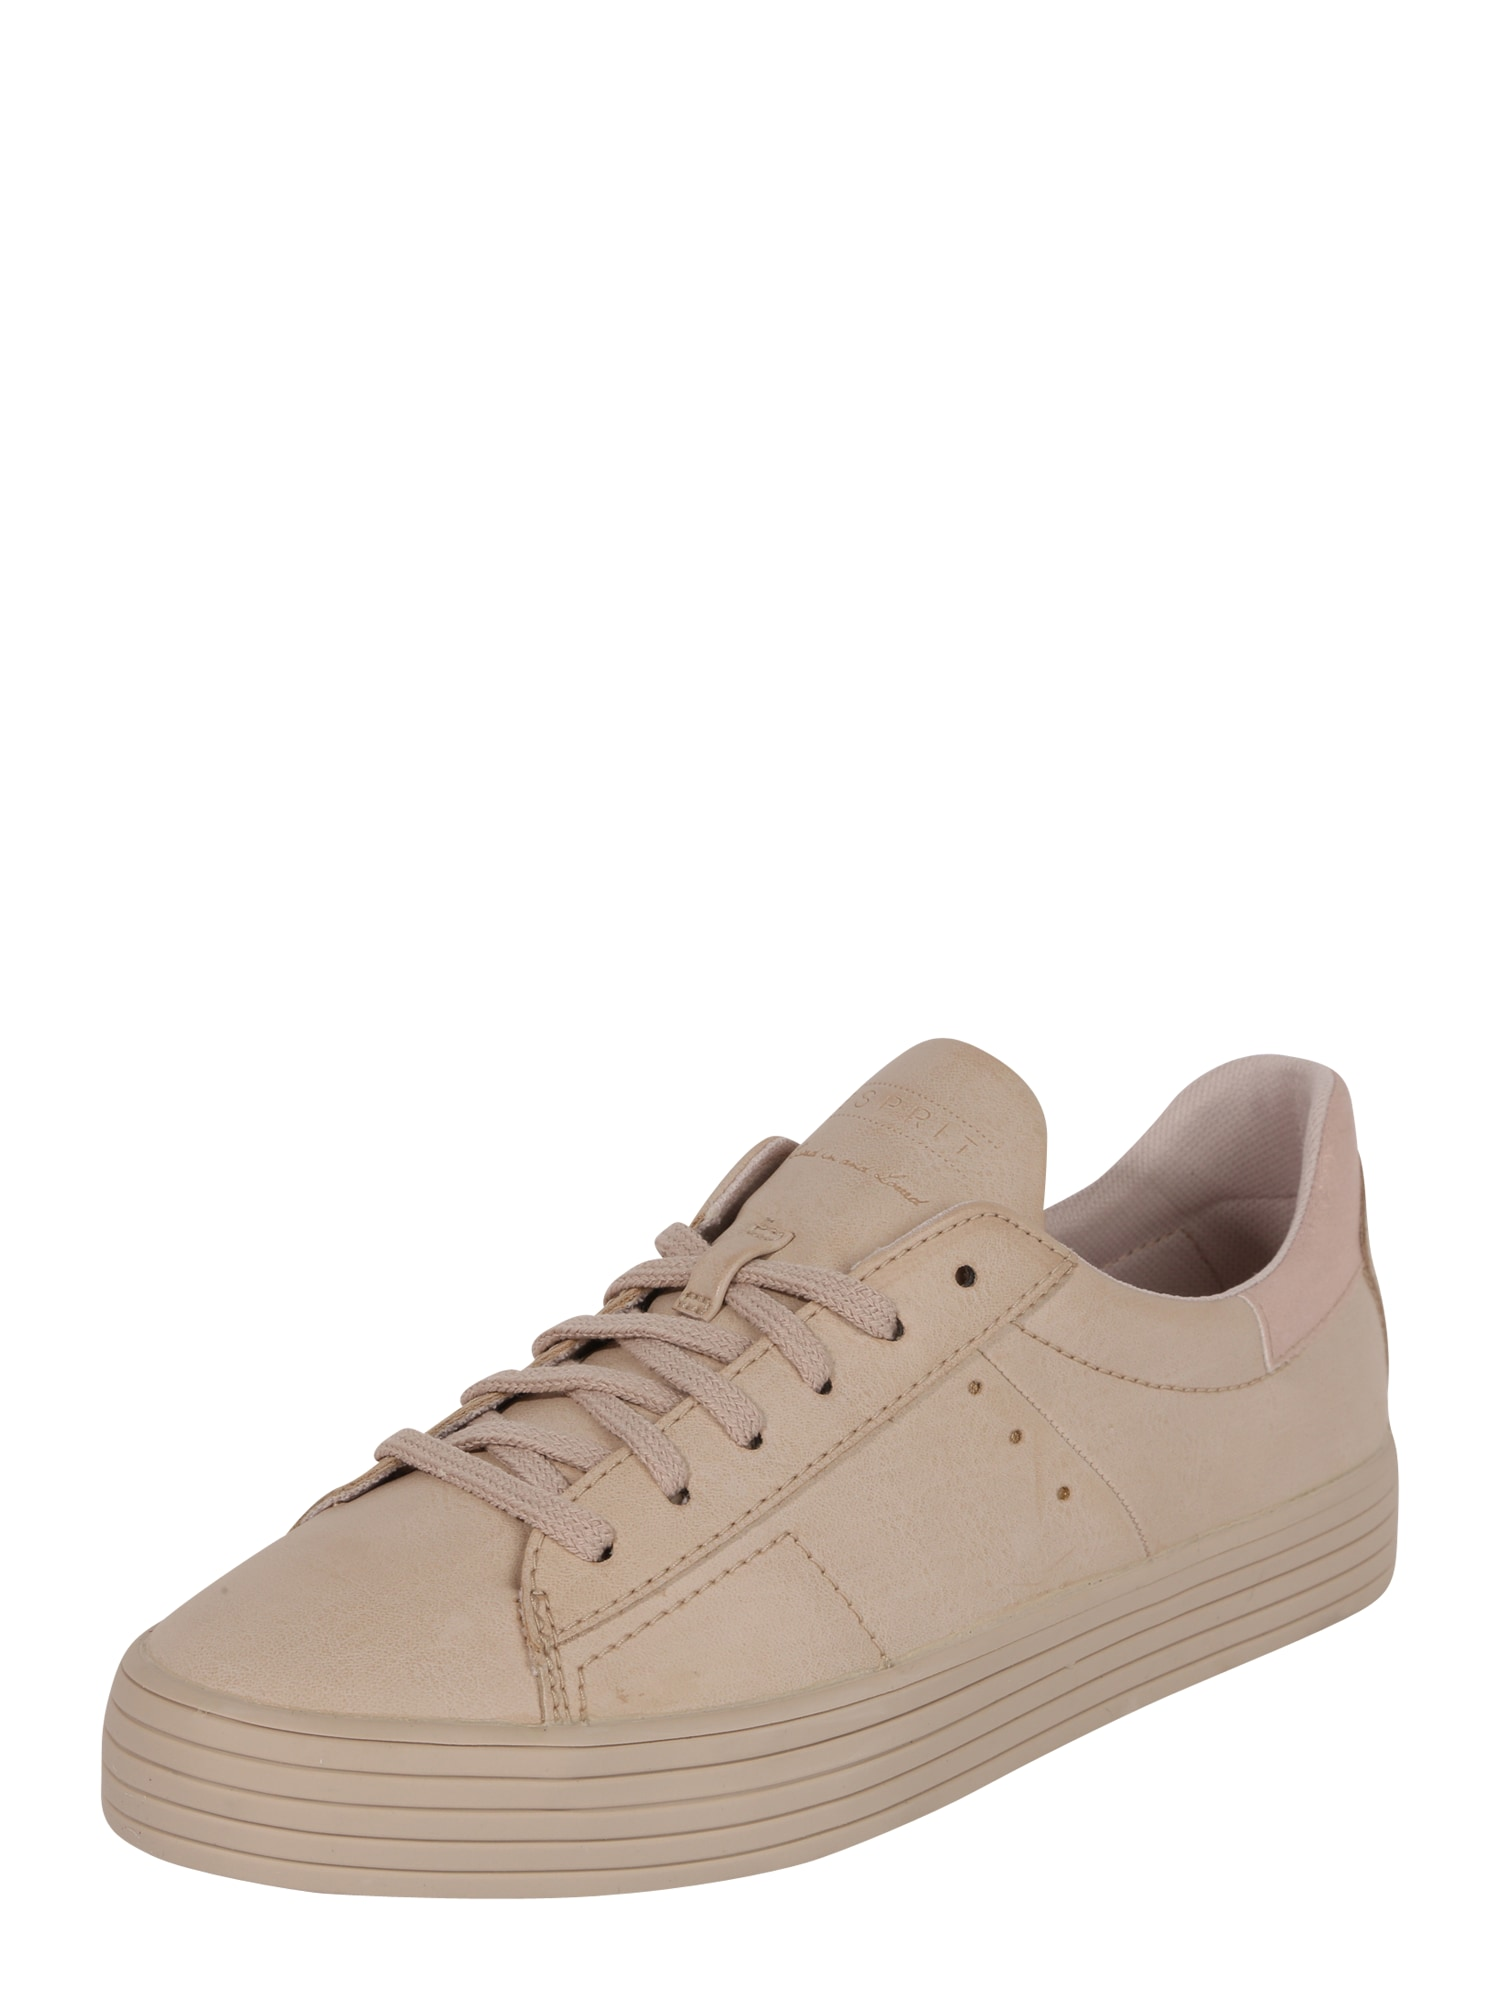 Sneaker ´Sita Lace up´